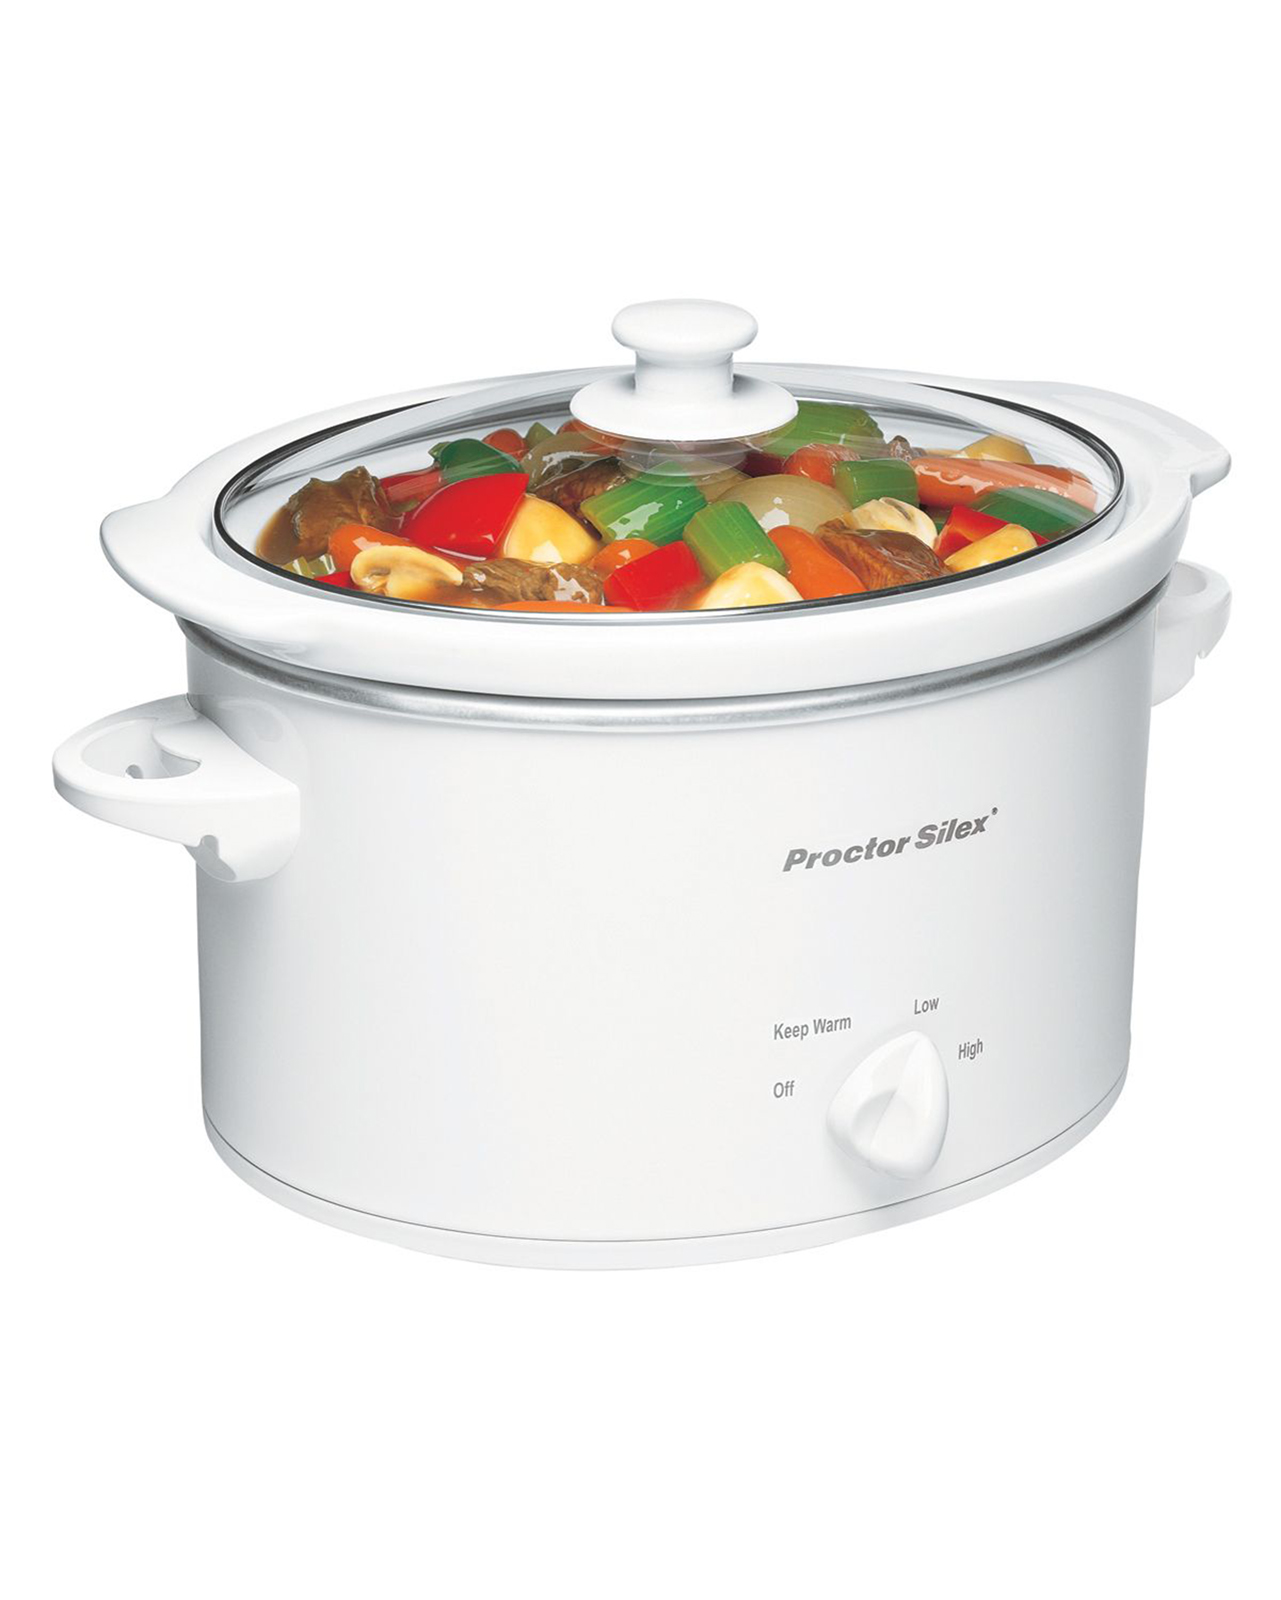 Proctor Silex 3 Quart Oval Slow Cooker